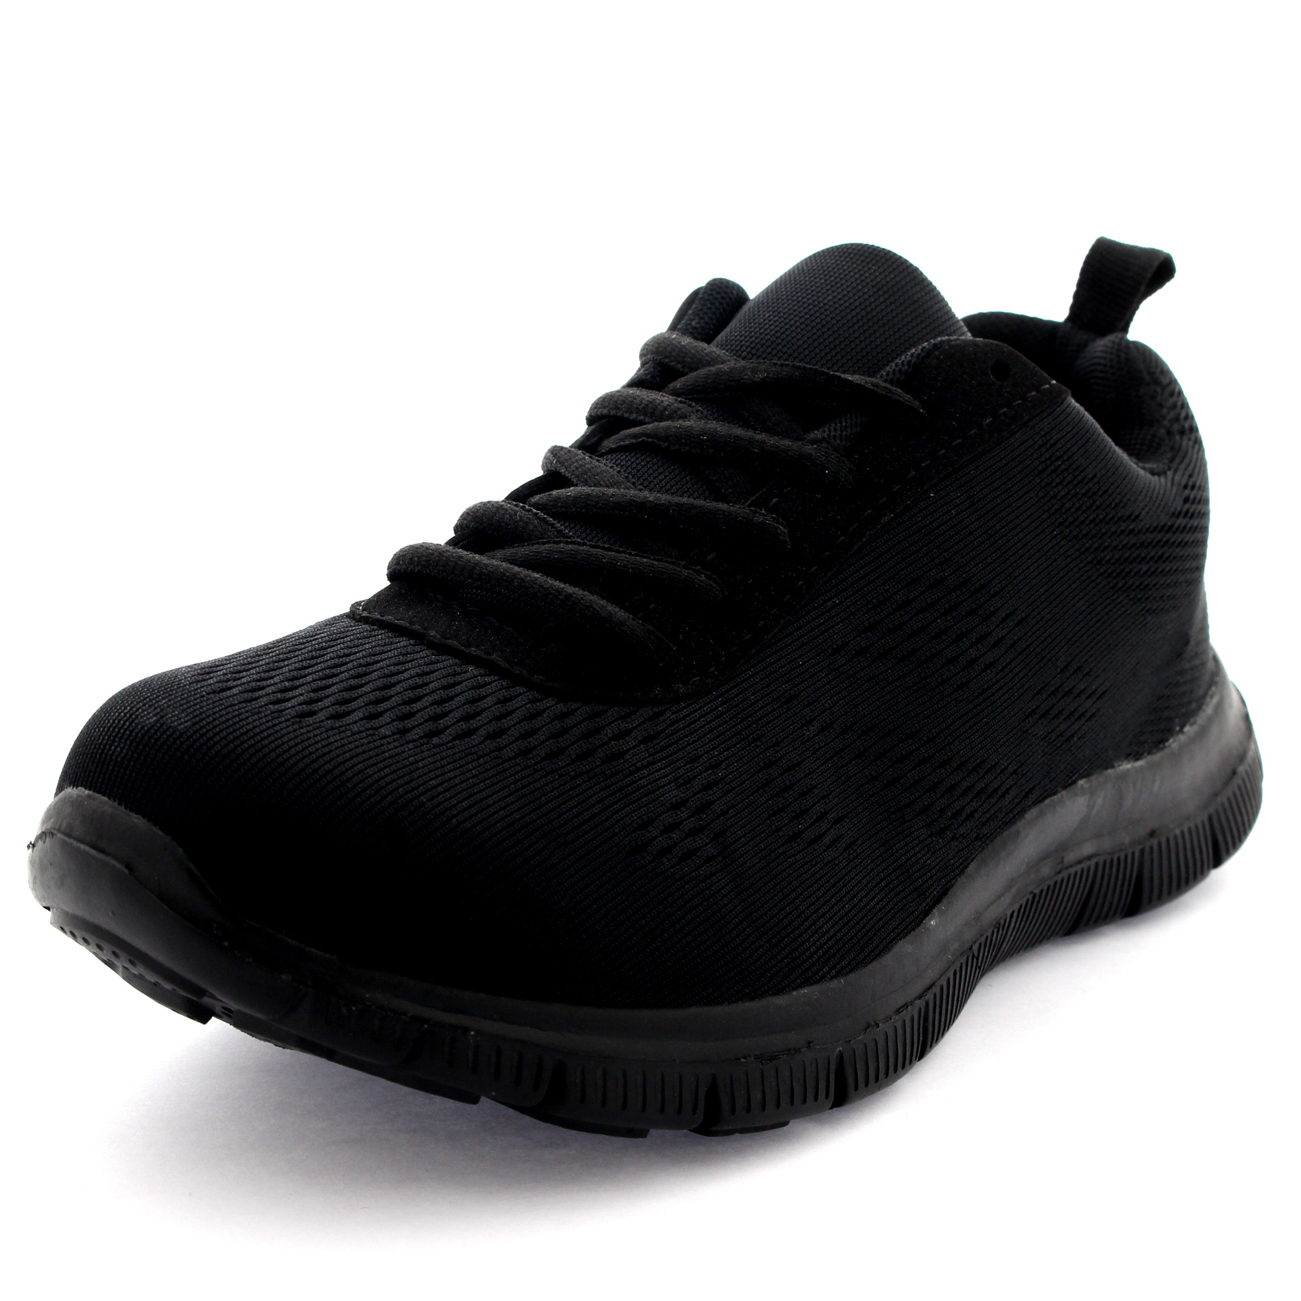 Womens-Get-Fit-Mesh-Running-Trainers-Athletic-Walk-